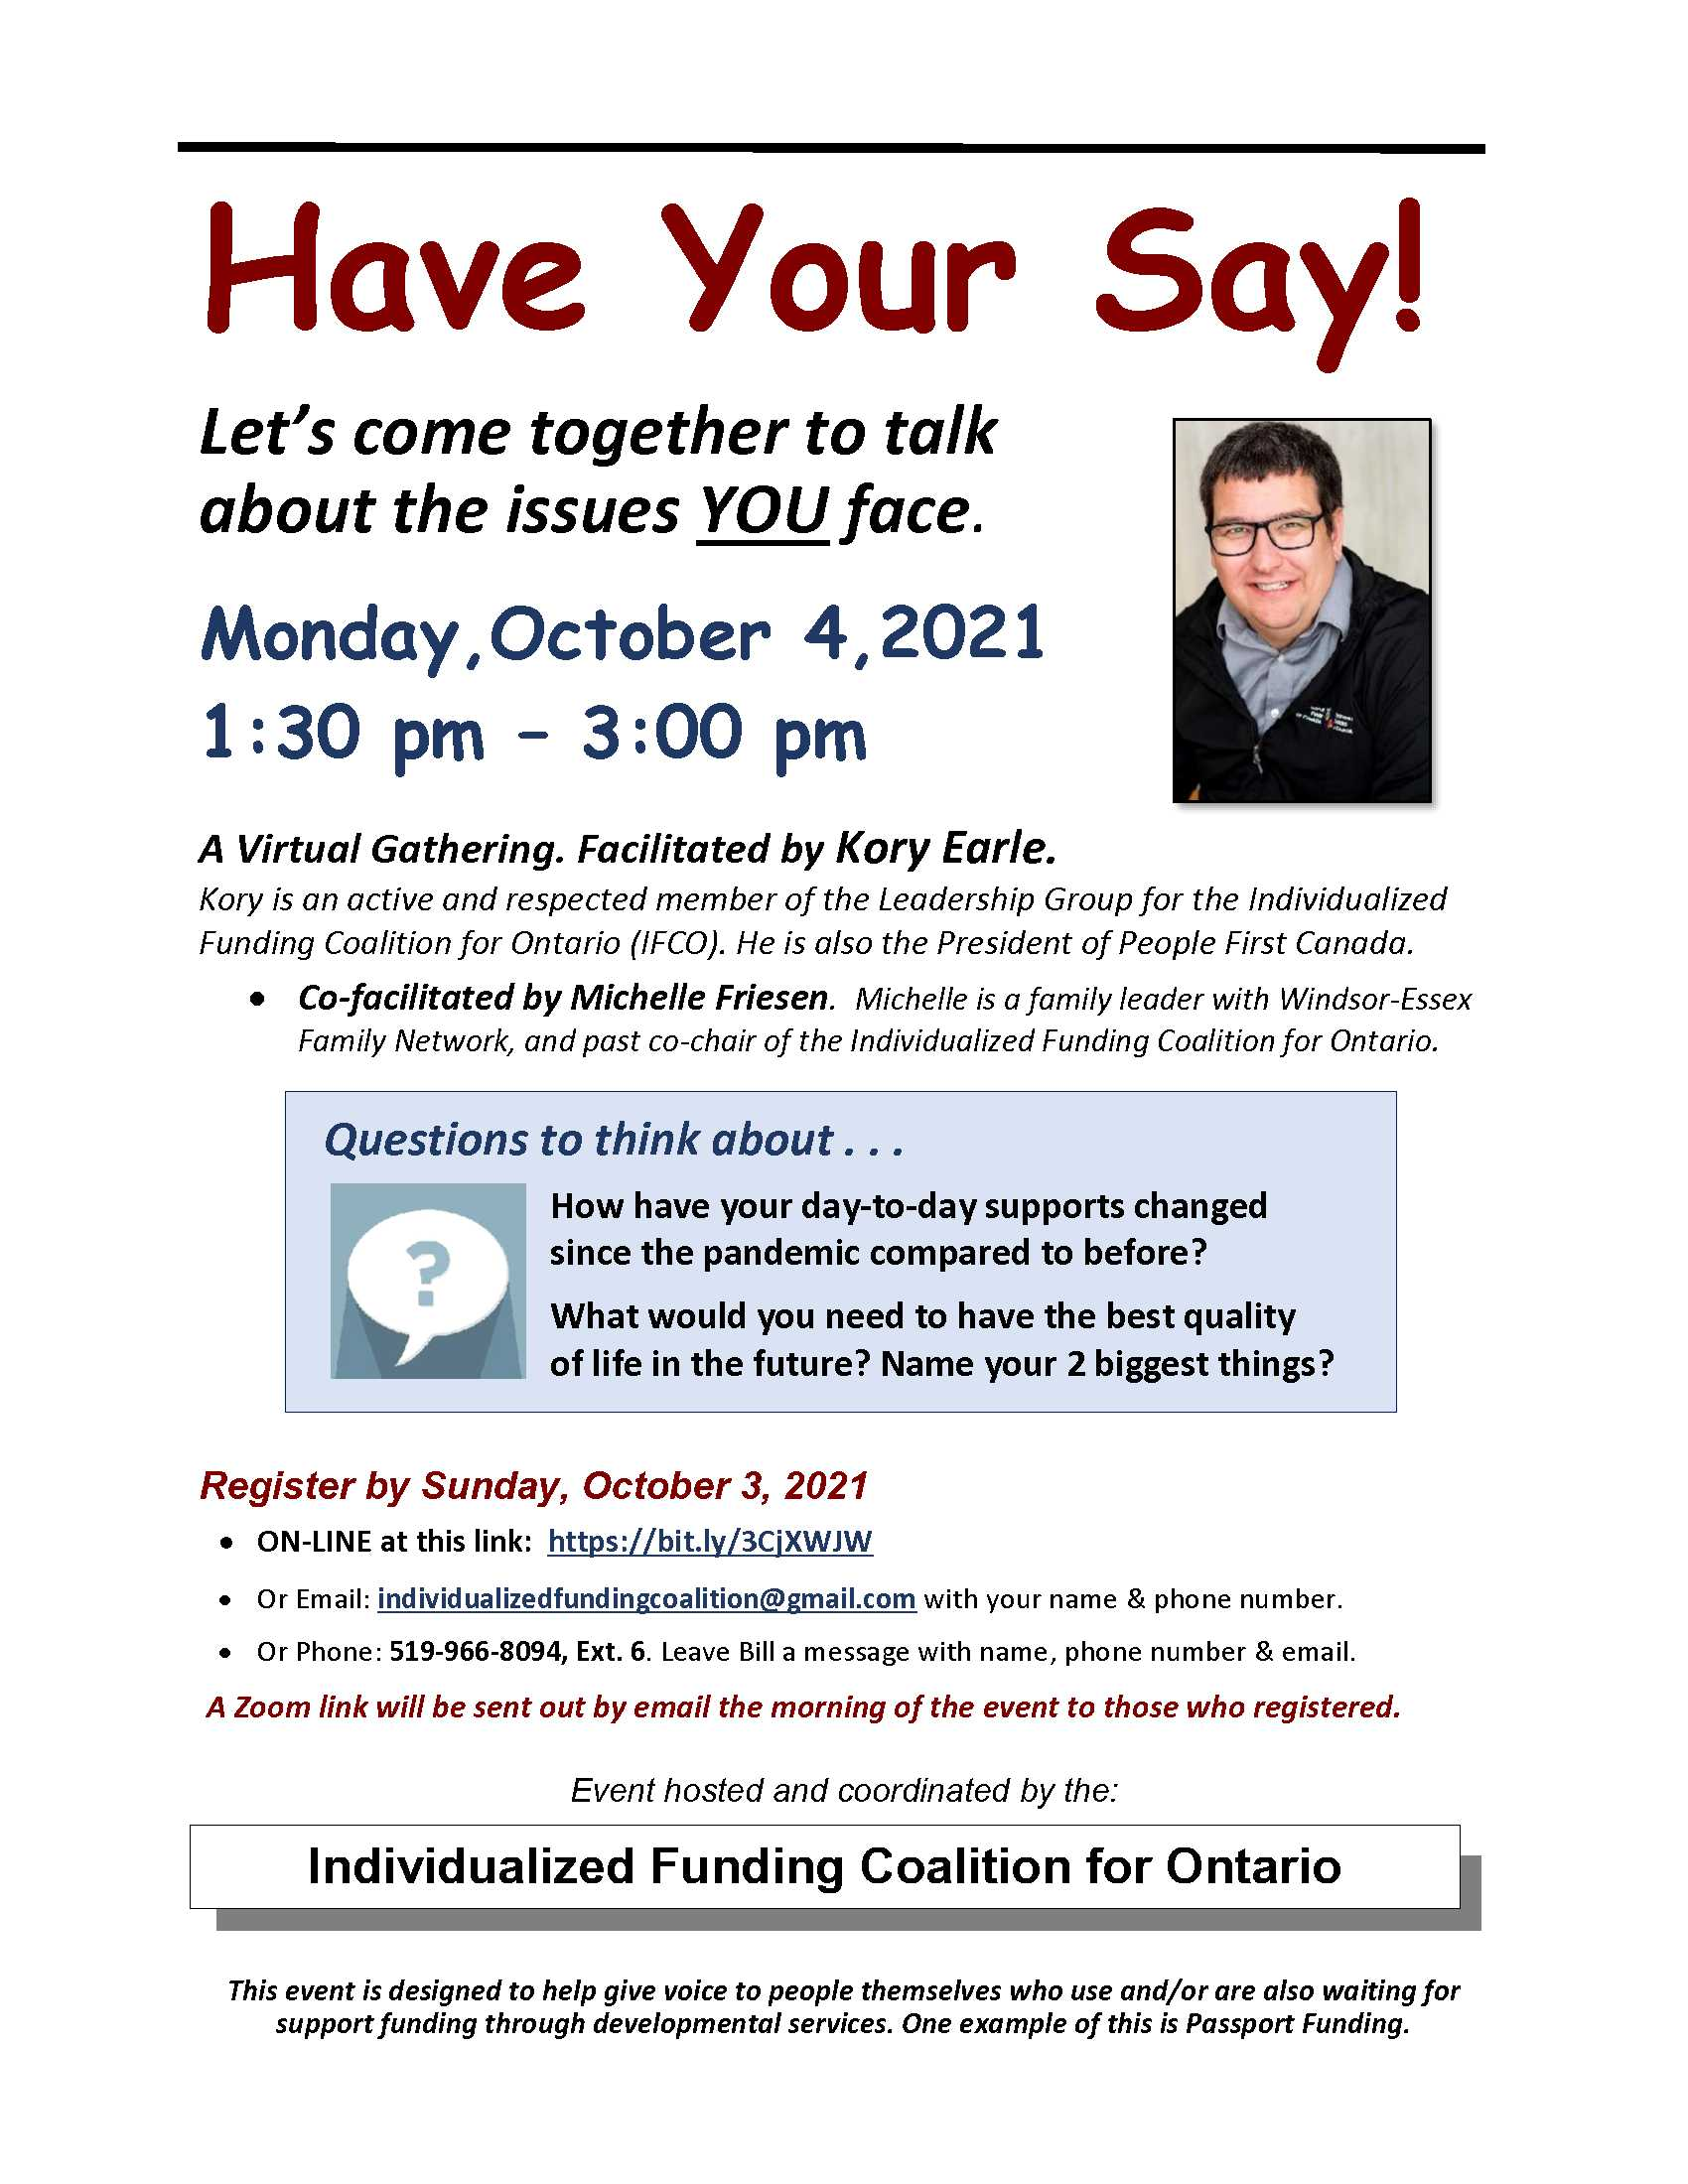 Have Your Say Oct. 4 2021 FINAL